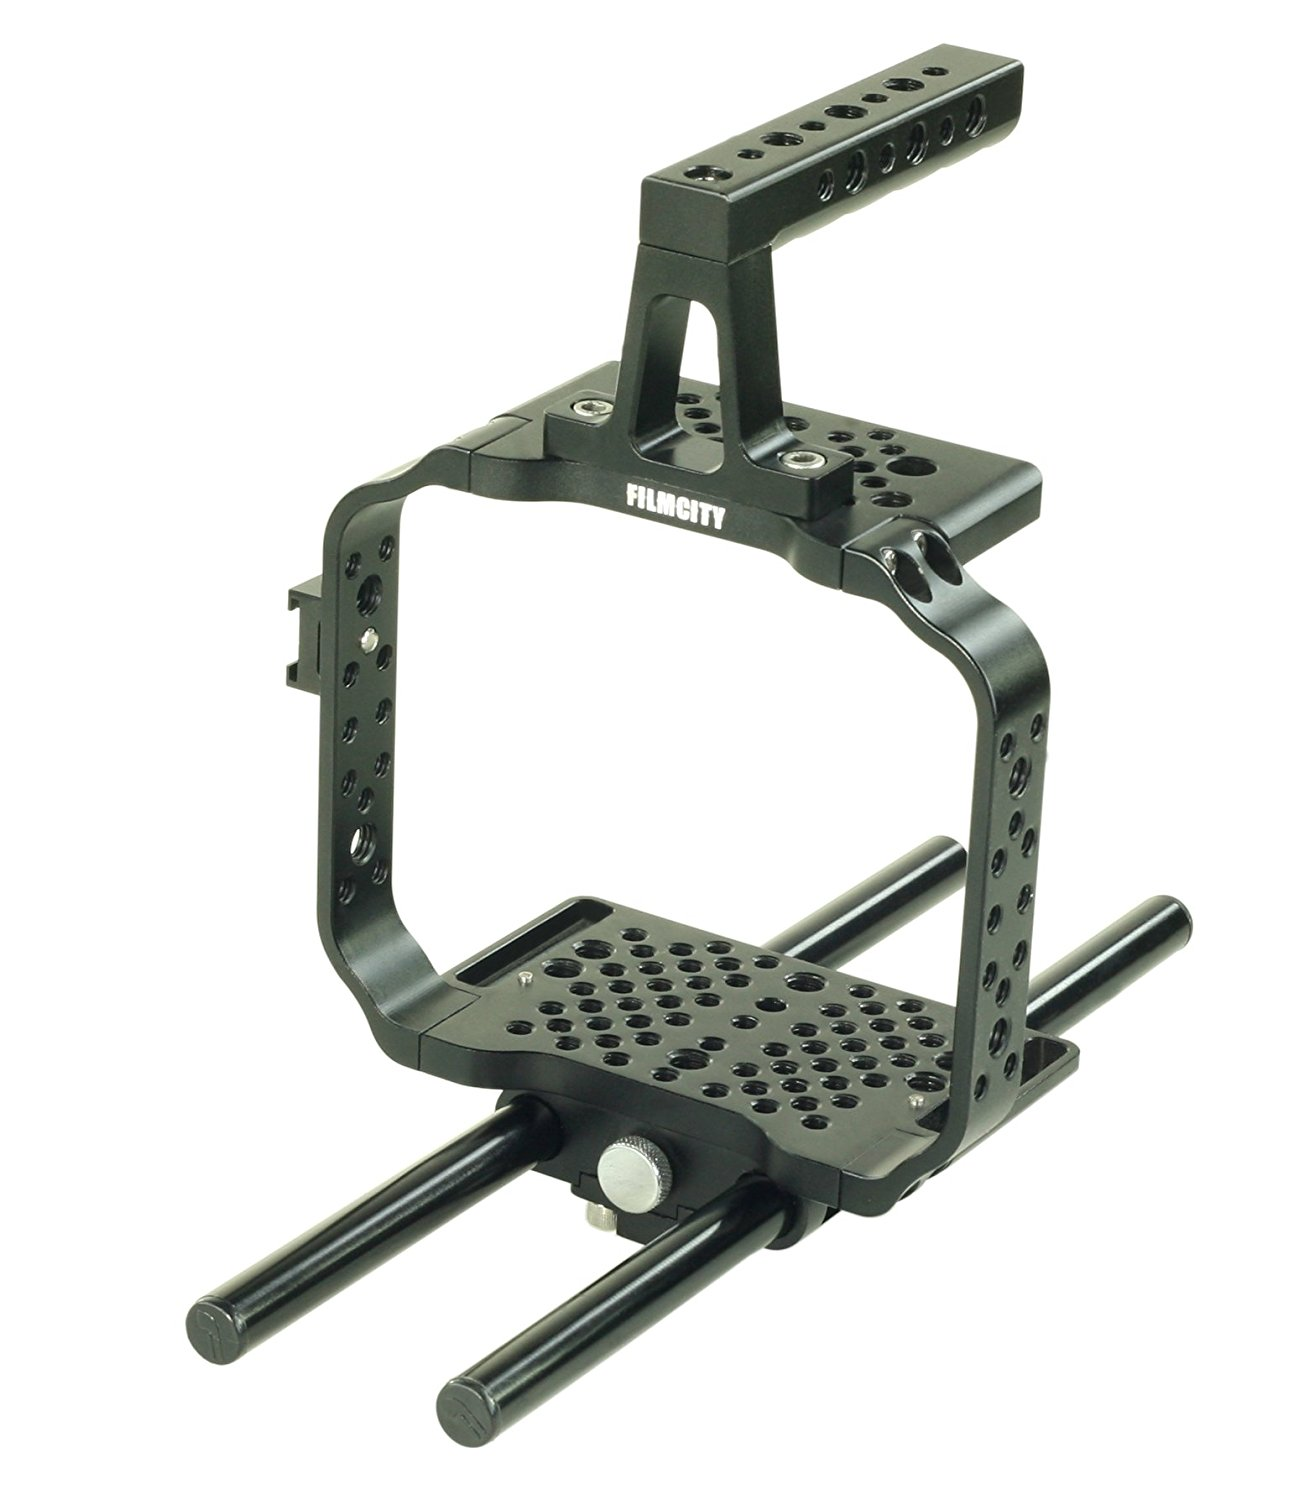 FILMCITY Power Sleek Cage Rig for Blackmagic Cinema Production Camera 4k (FC-SC-P) | BMCC Cage with Top Handle & 15mm Rod Support for Mounting Accessories